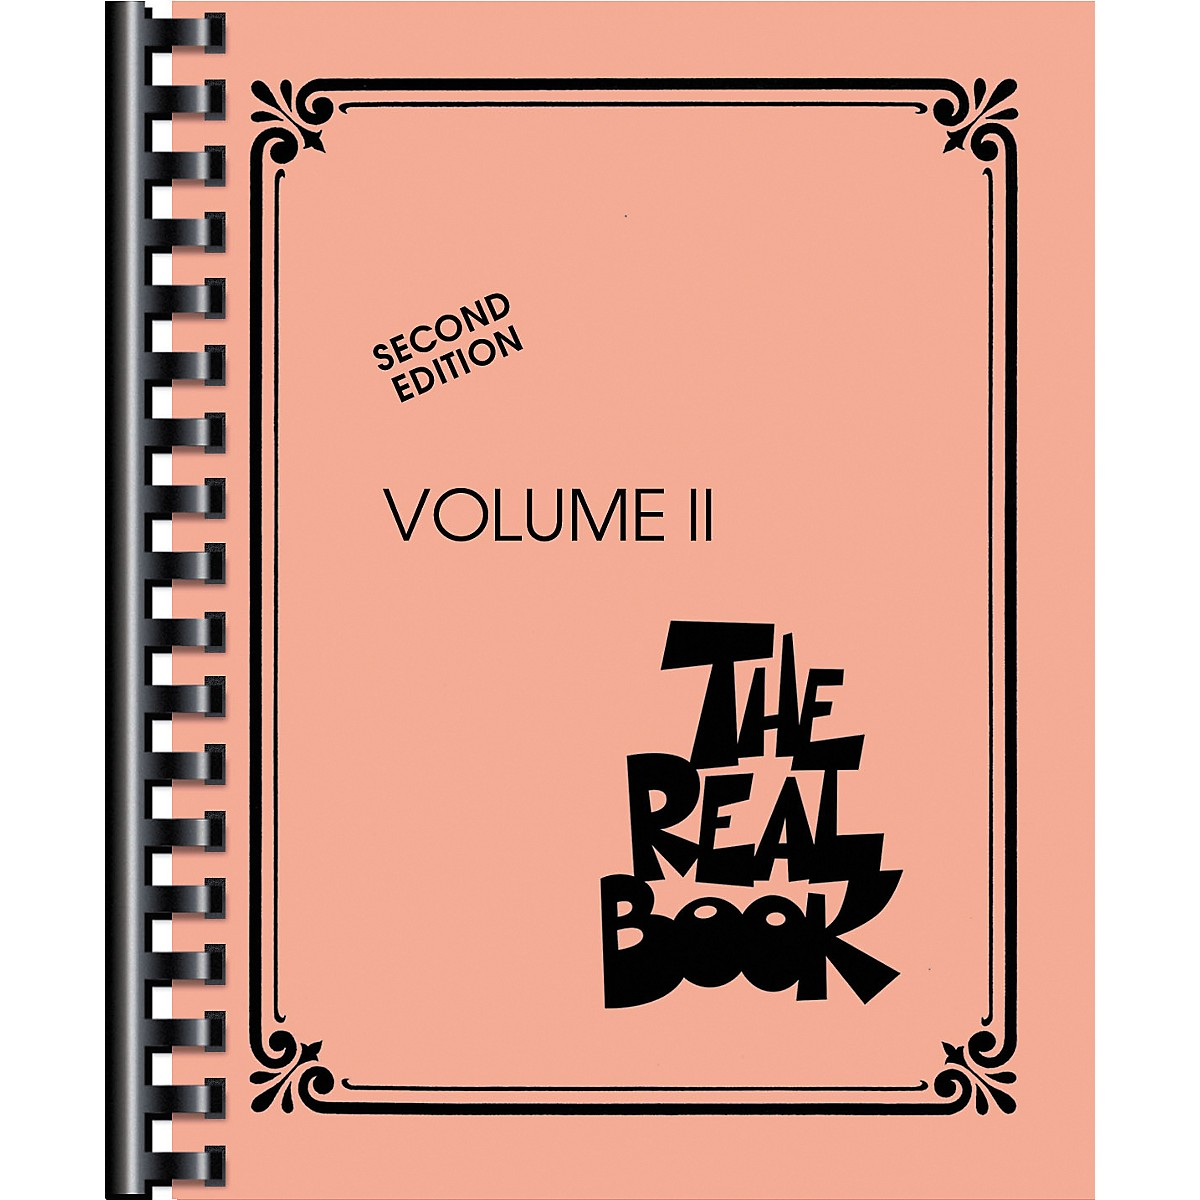 Hal Leonard The Real Book Volume II - Second Edition (C Instruments)